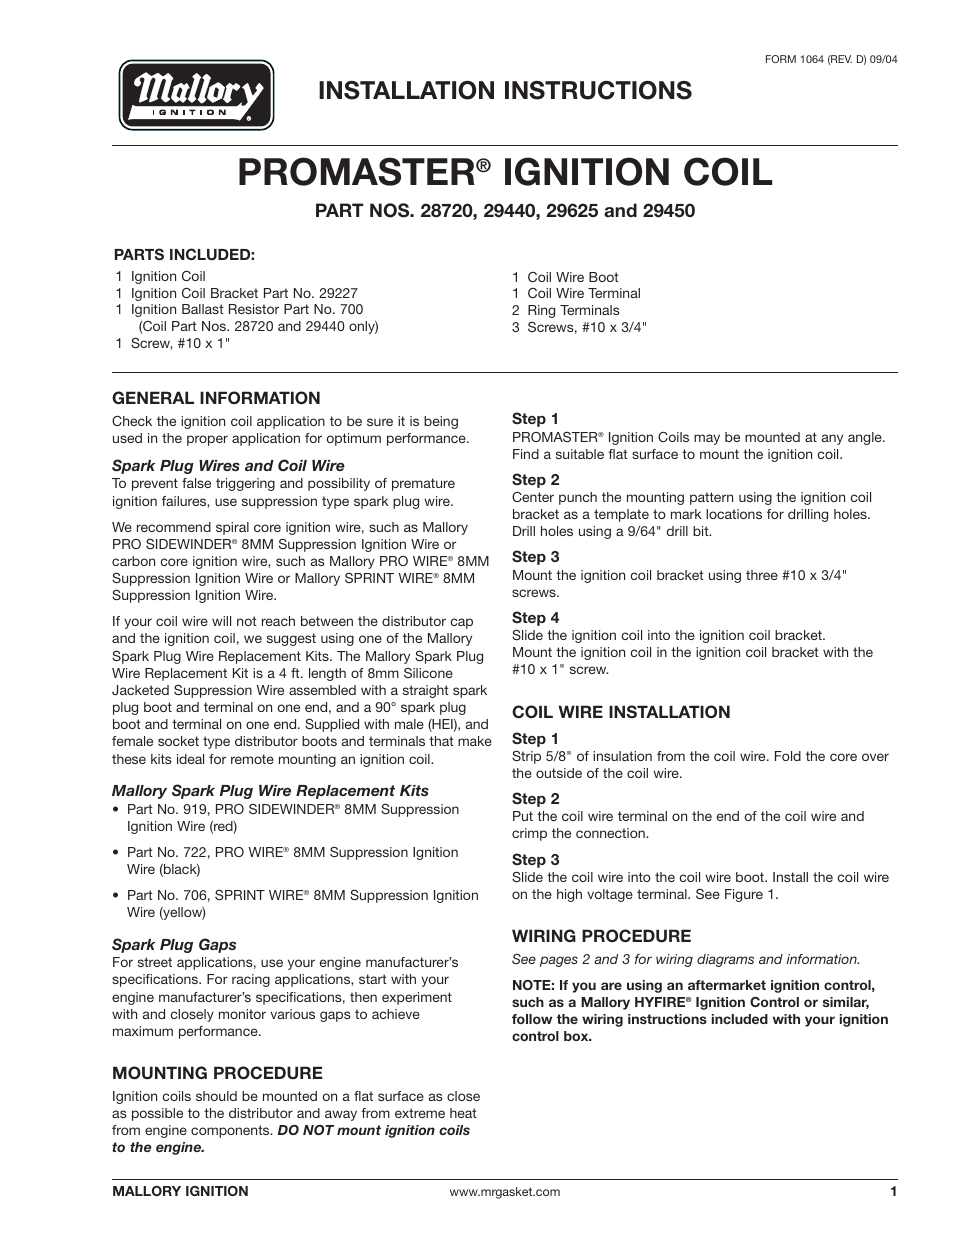 mallory ignition mallory promaster ignition coil 29440_29450_29625_29450 page1?resize\\=665%2C861 wiring diagram for mallory promaster series distributor 8360m  at gsmx.co